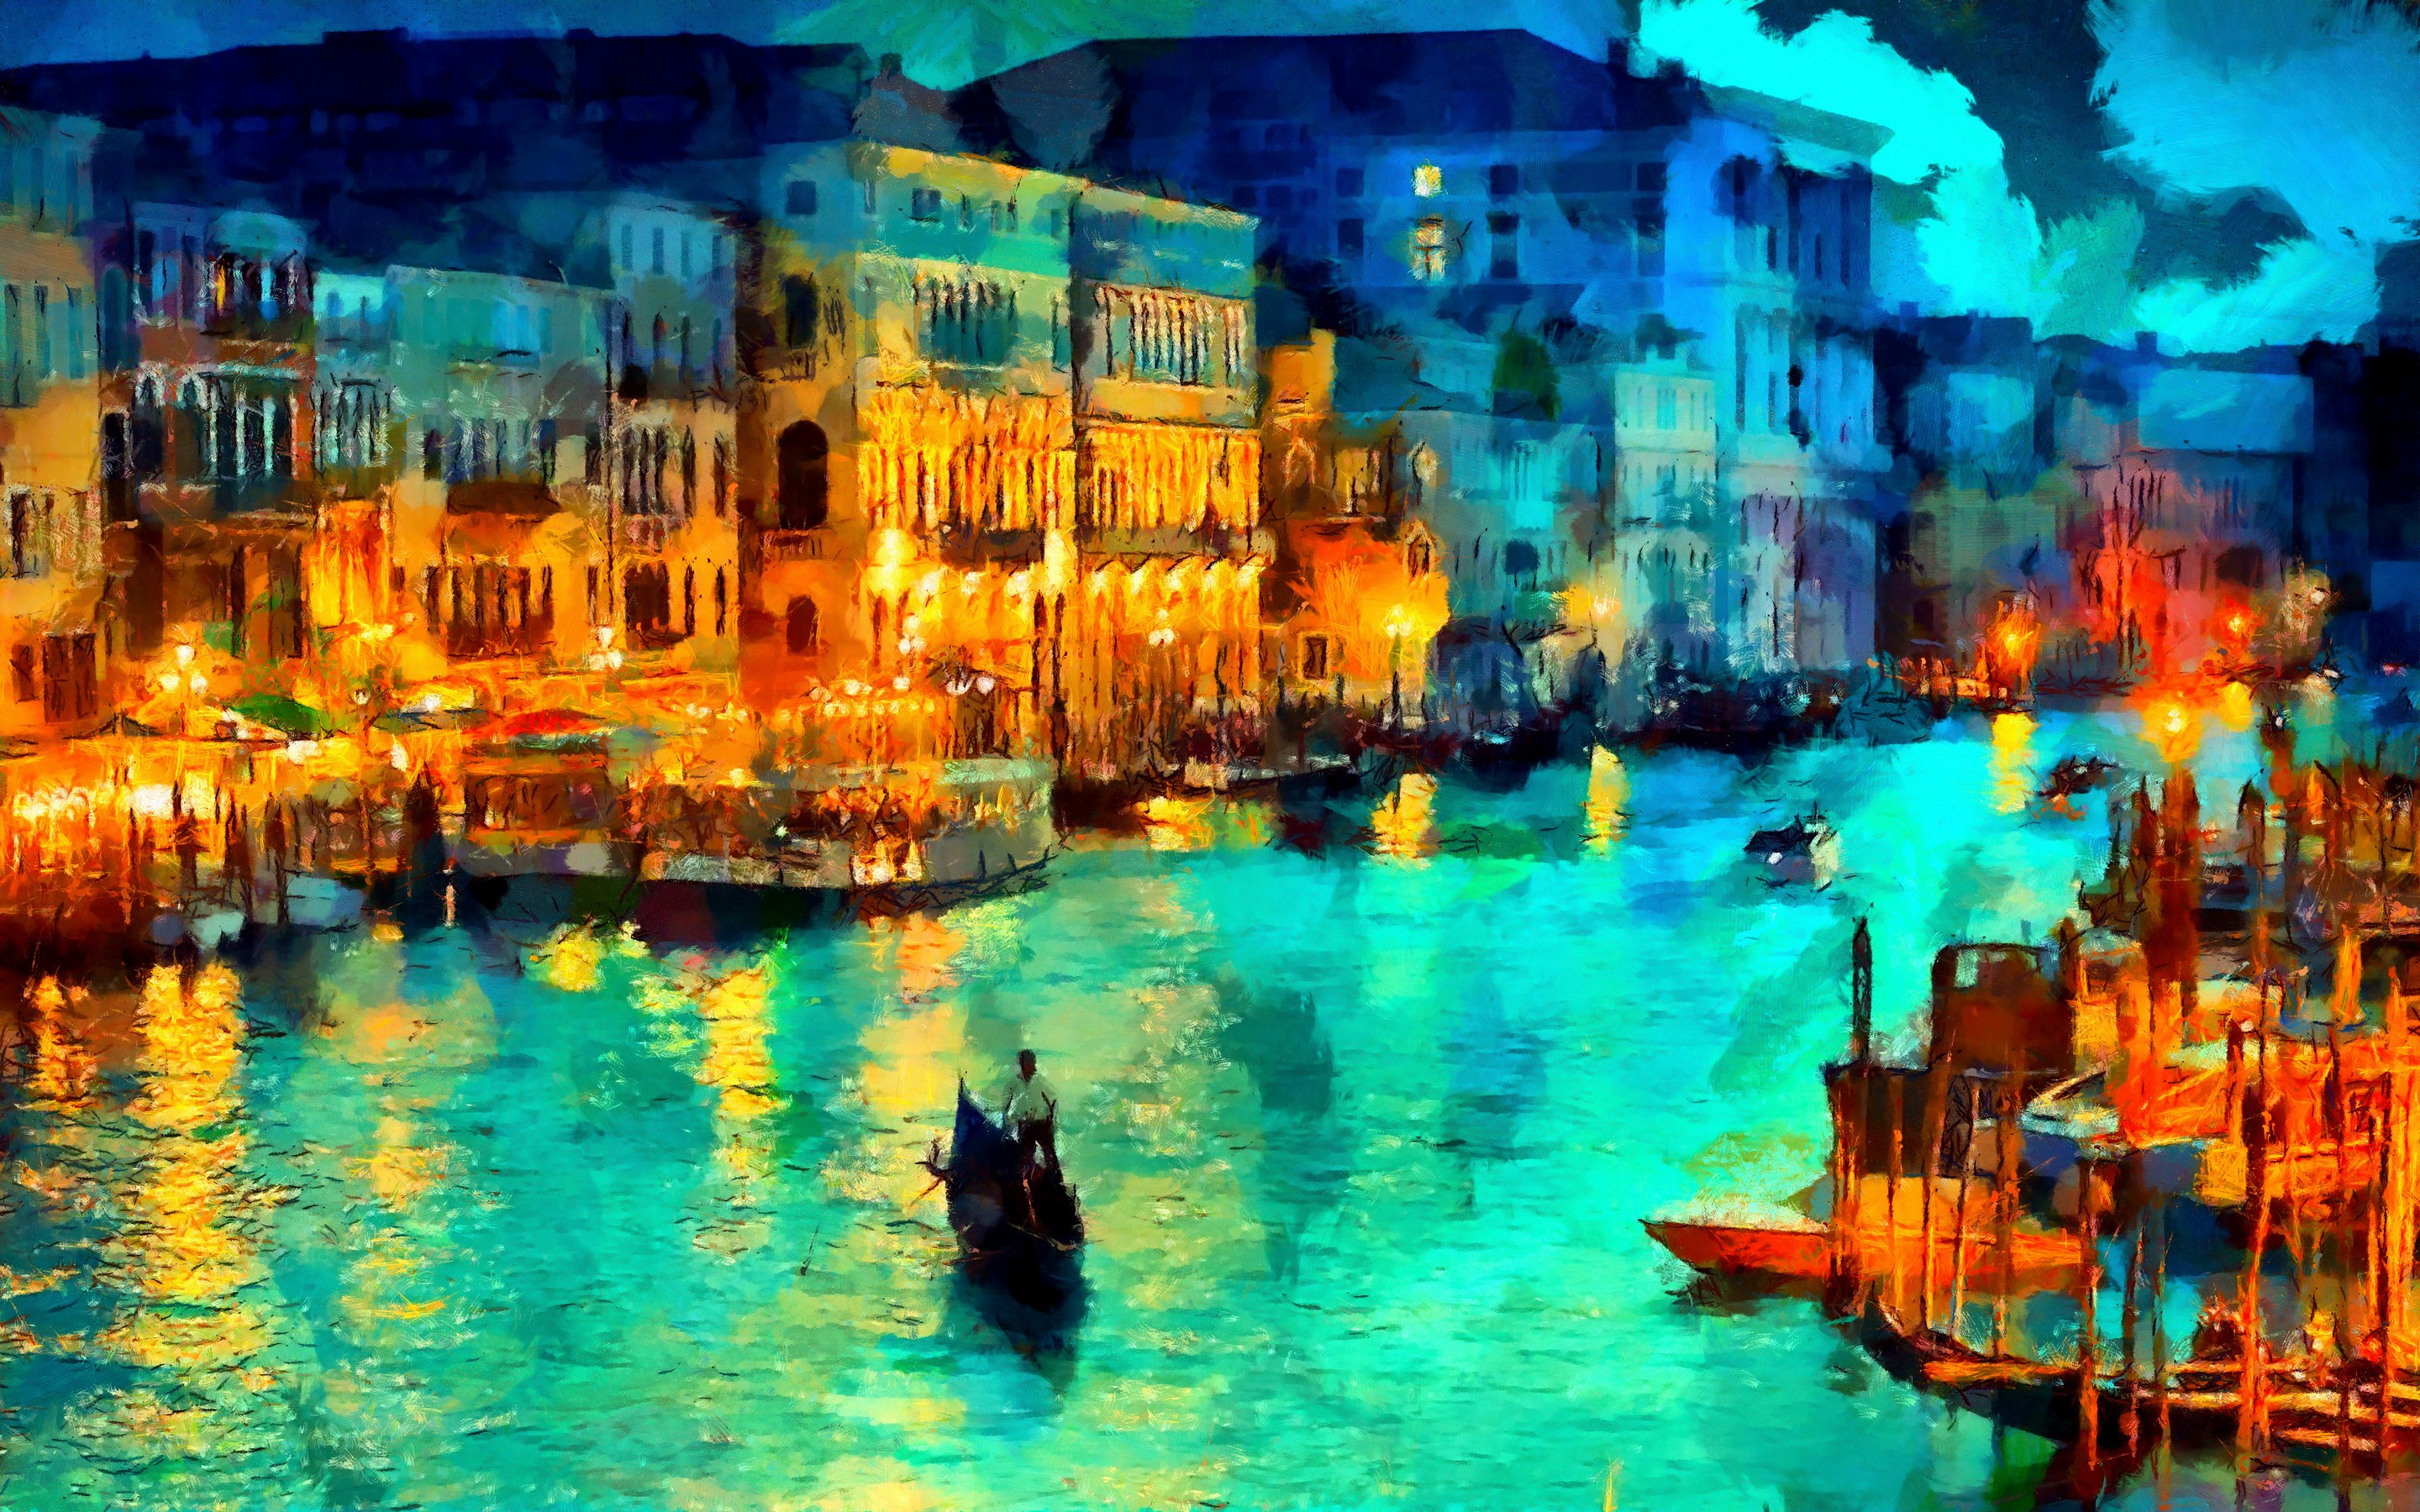 night in venezia wallpaper 7325 pc en